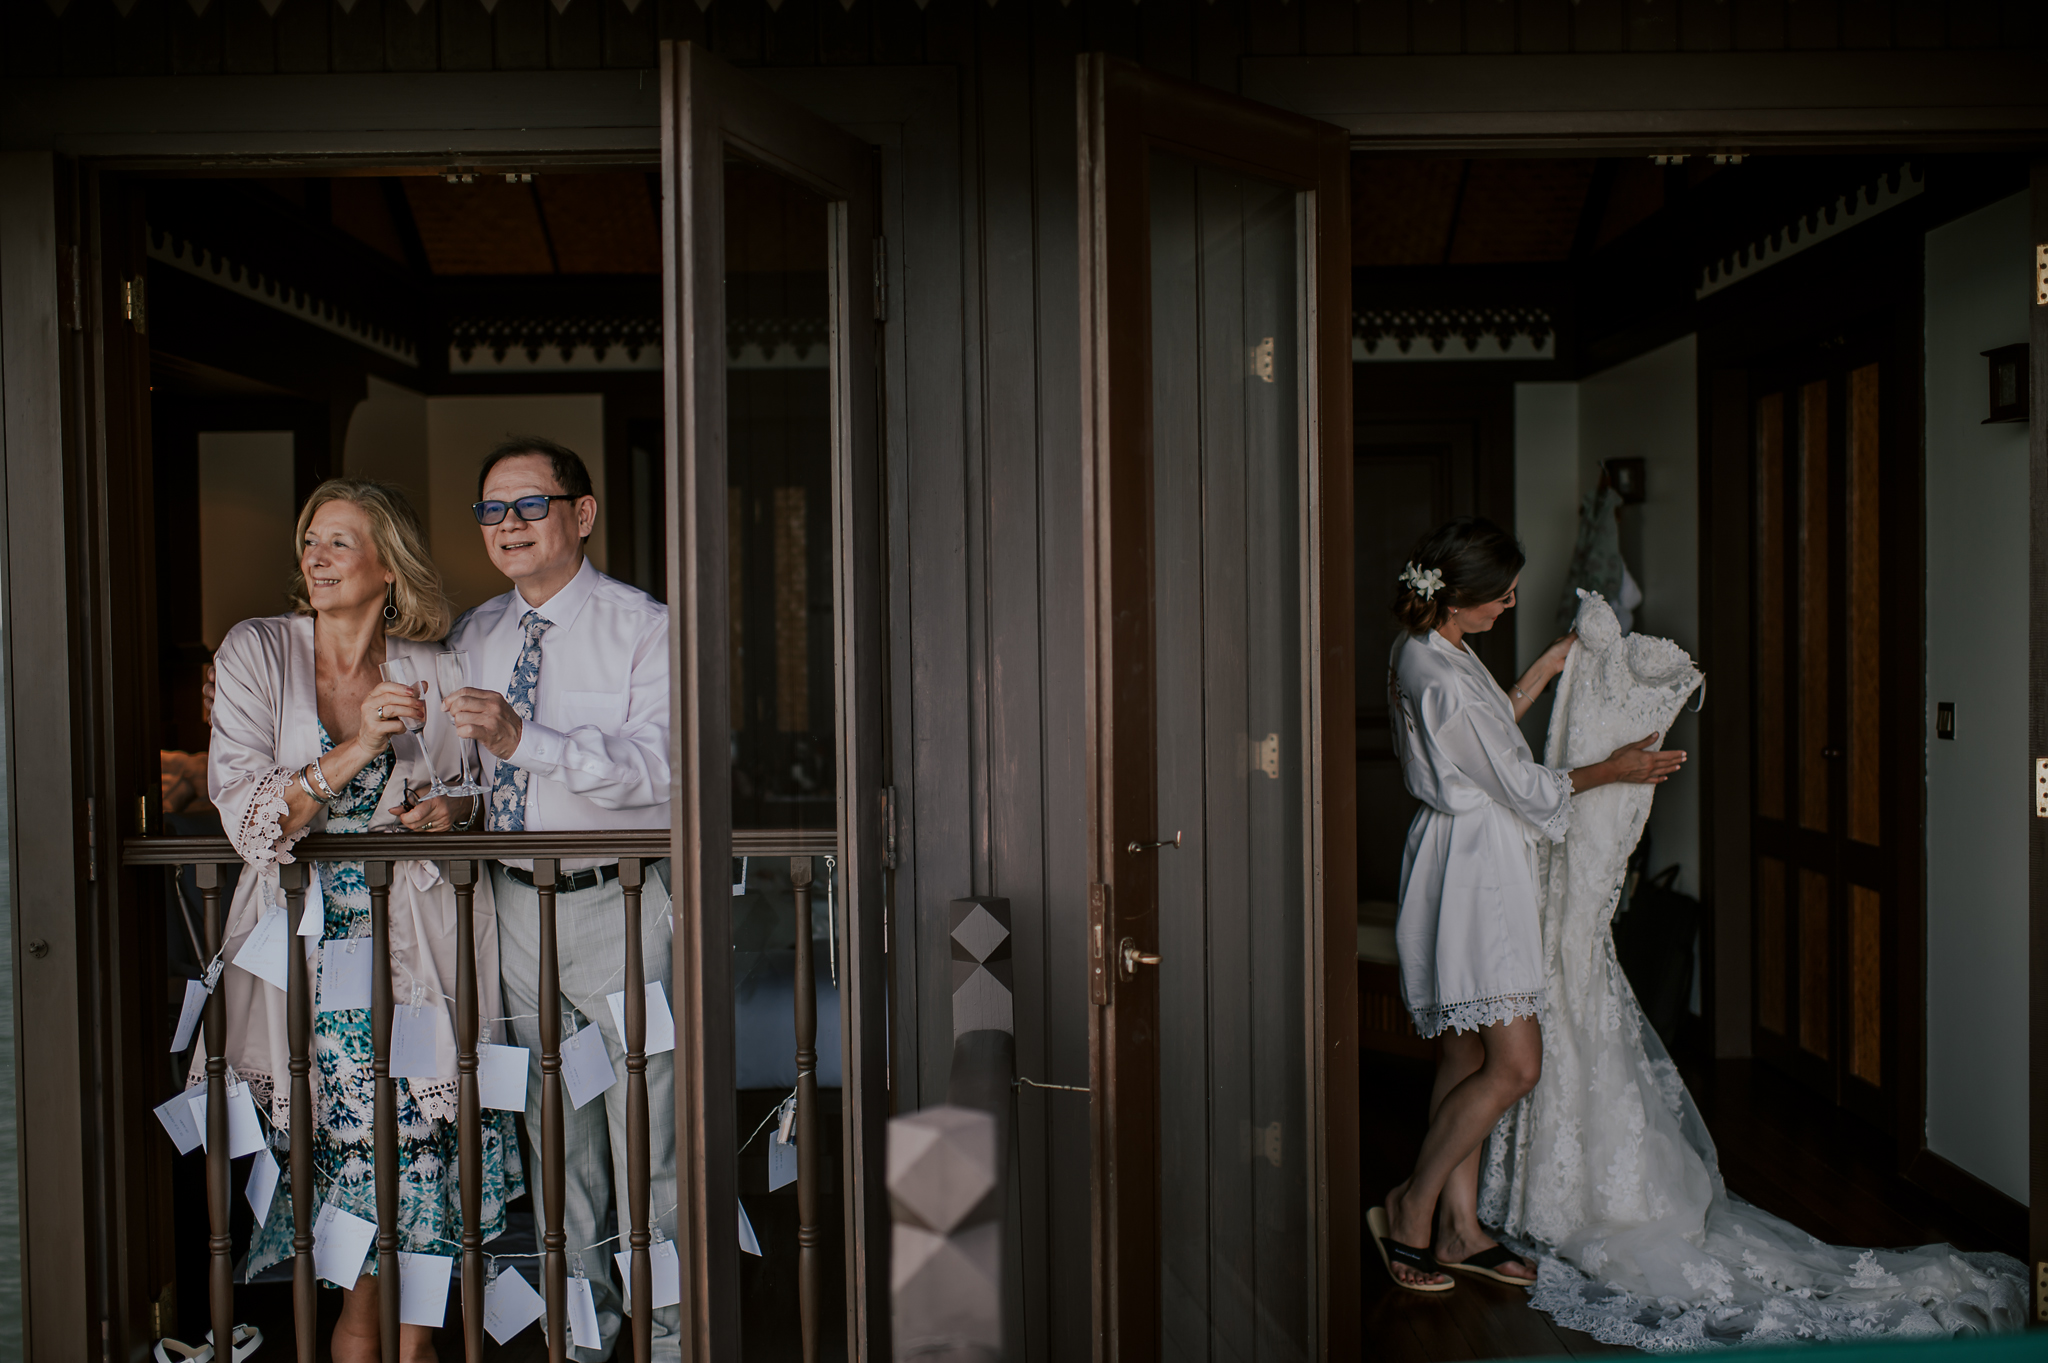 bride-gets-ready-while-parents-wait-on-balcony-edwin-tan-photography-malaysia